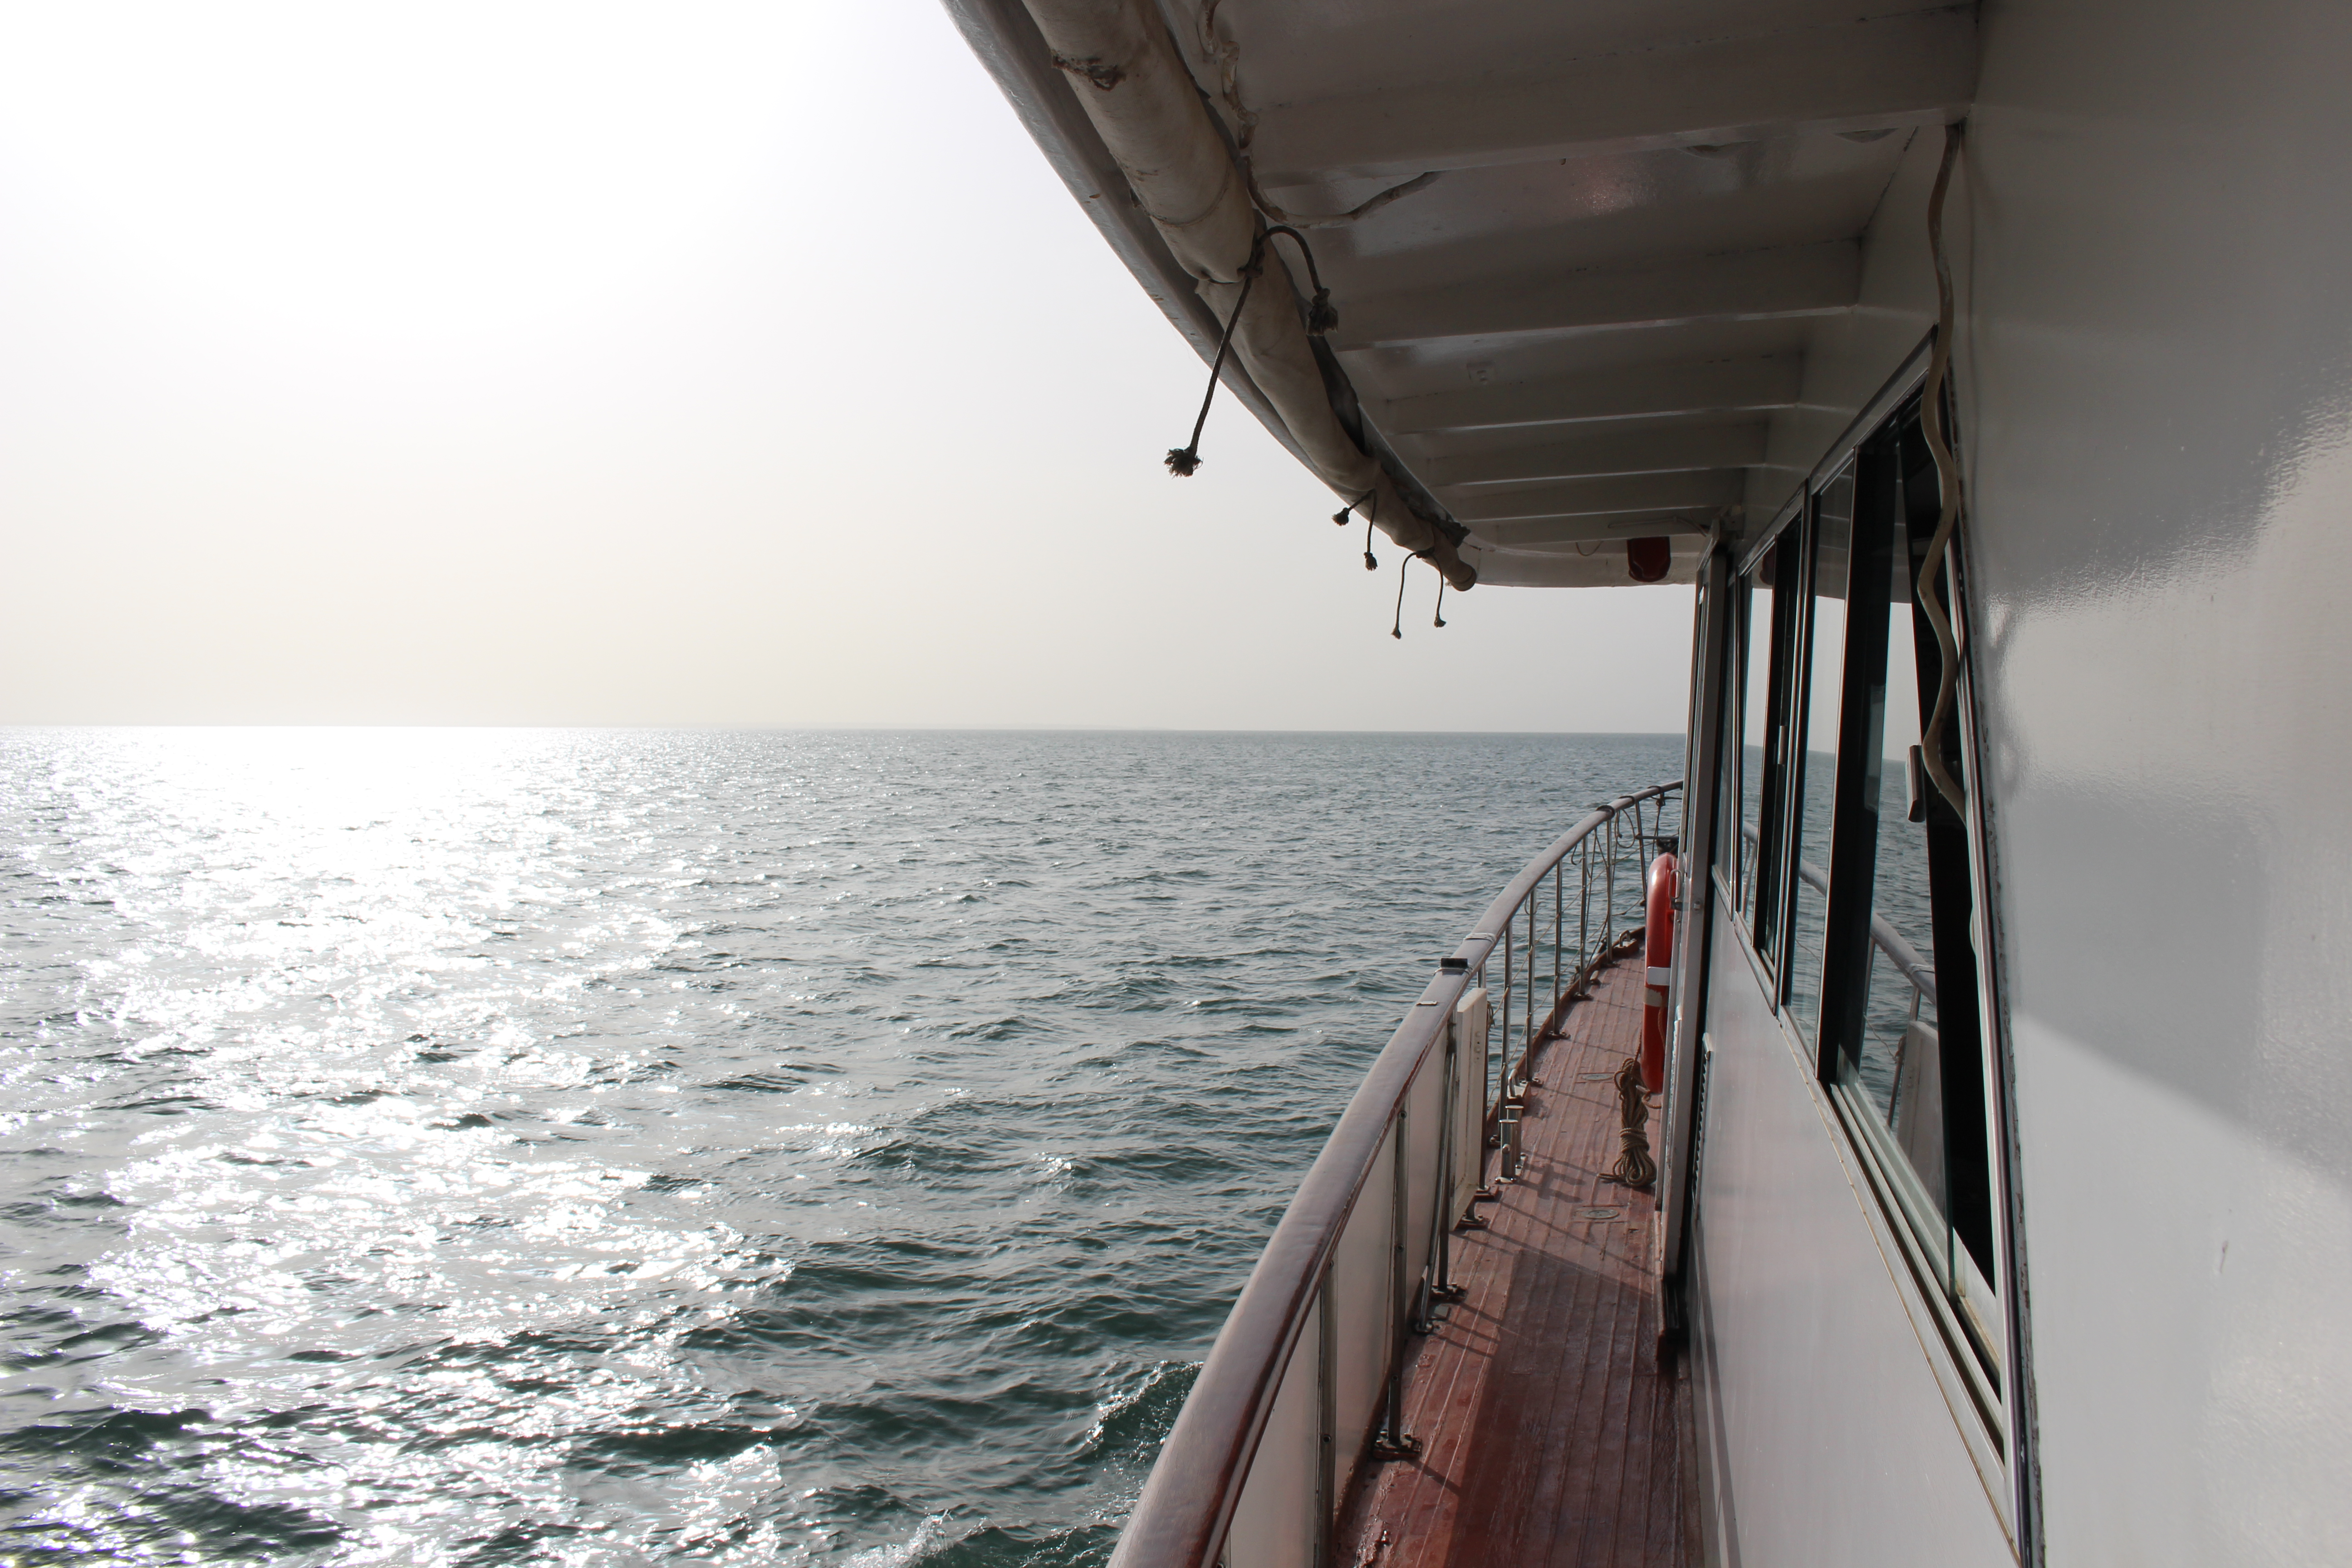 Boat on the Gambia river